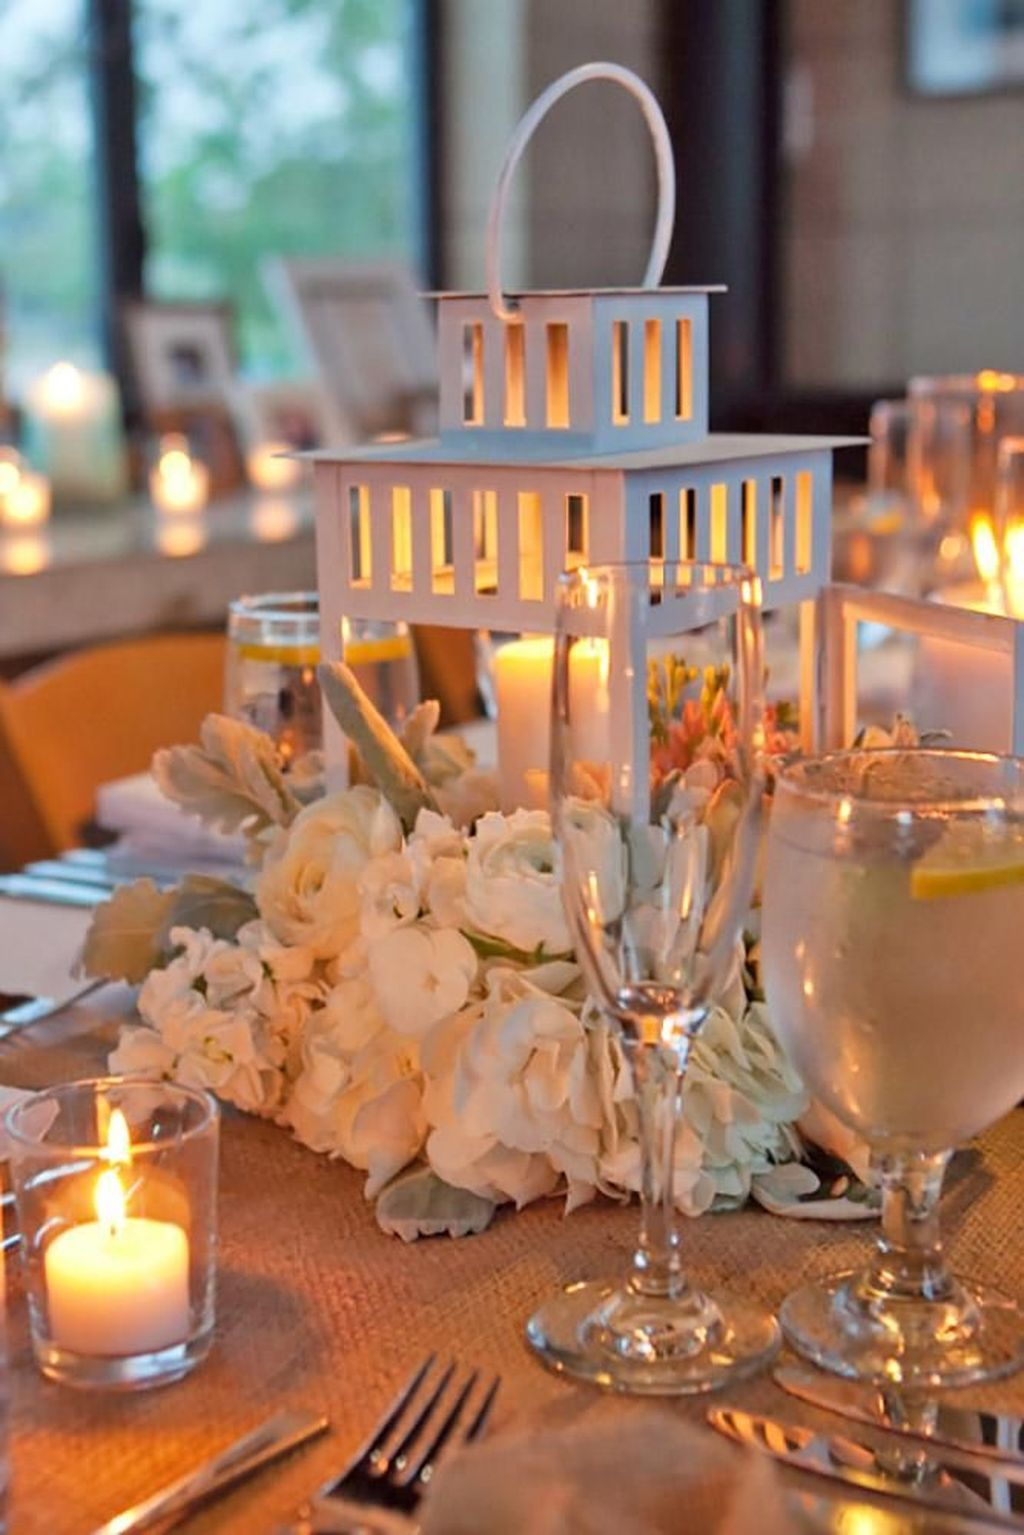 Stunning Winter Lantern Centerpieces For Wedding 11